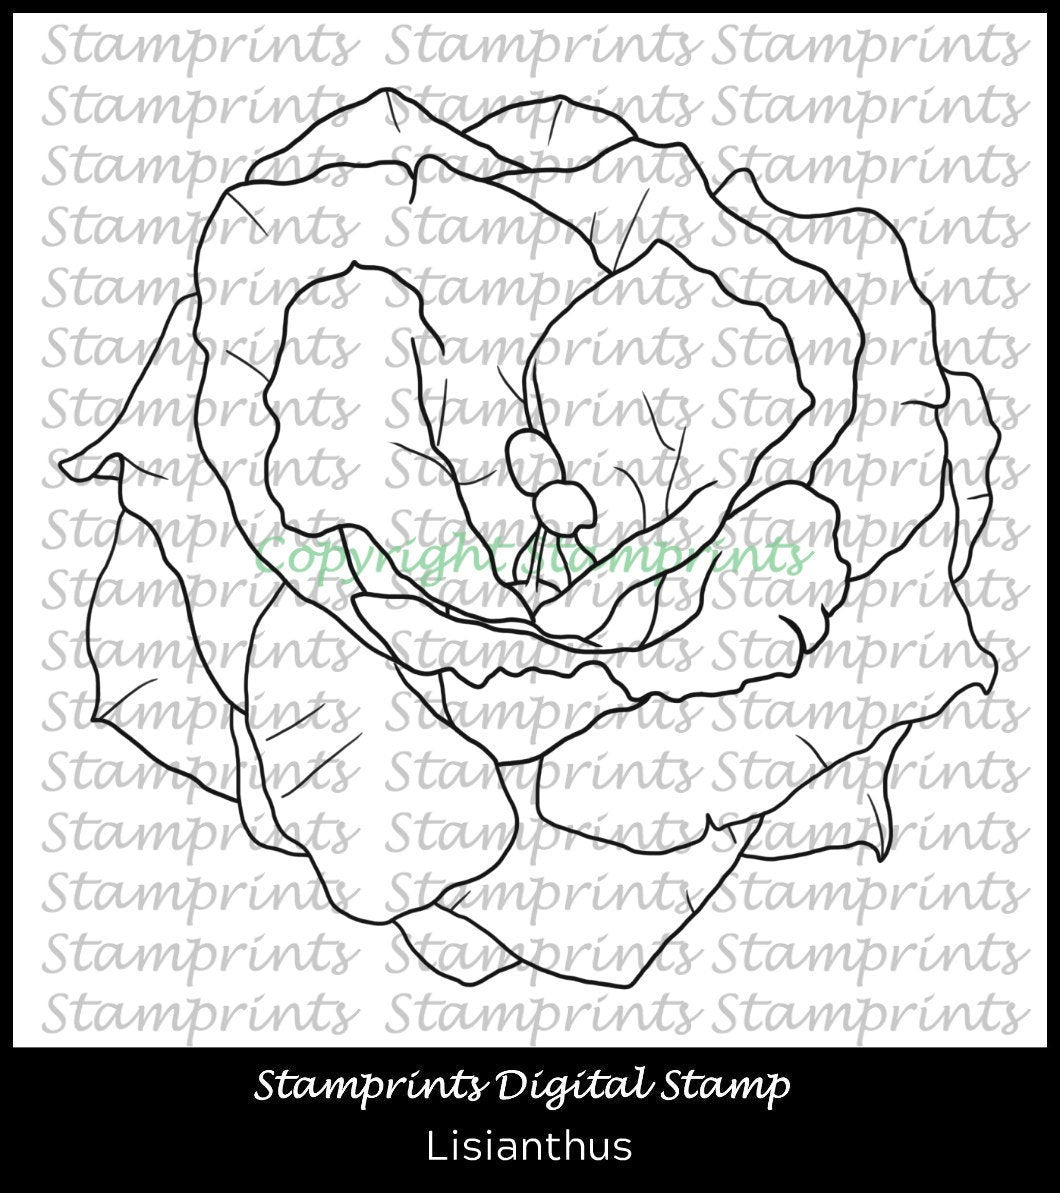 Lisianthus Flower Digital Stamp by Stamprints (TLS-2001) Cardmaking.MixedMedia.